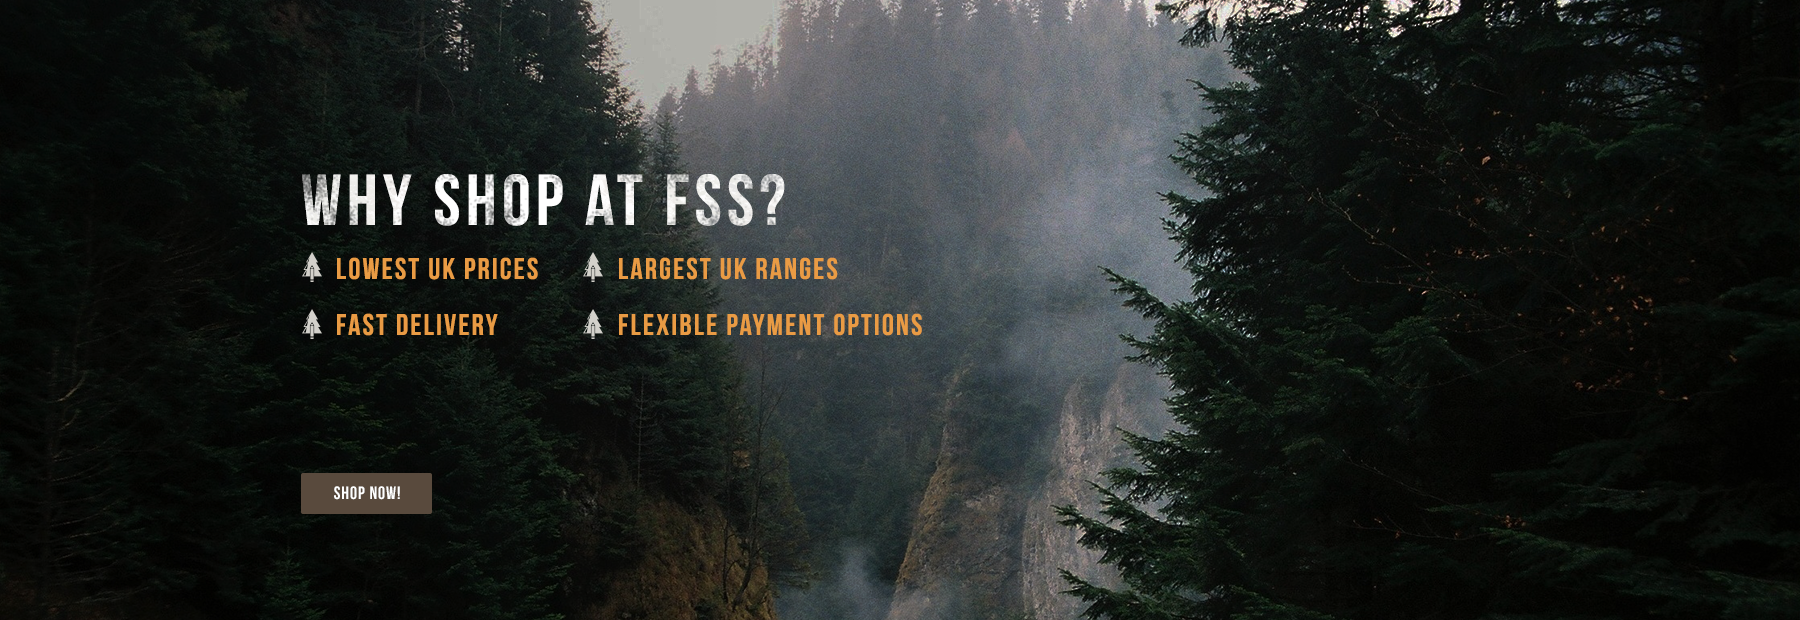 Why Shop at FSS?